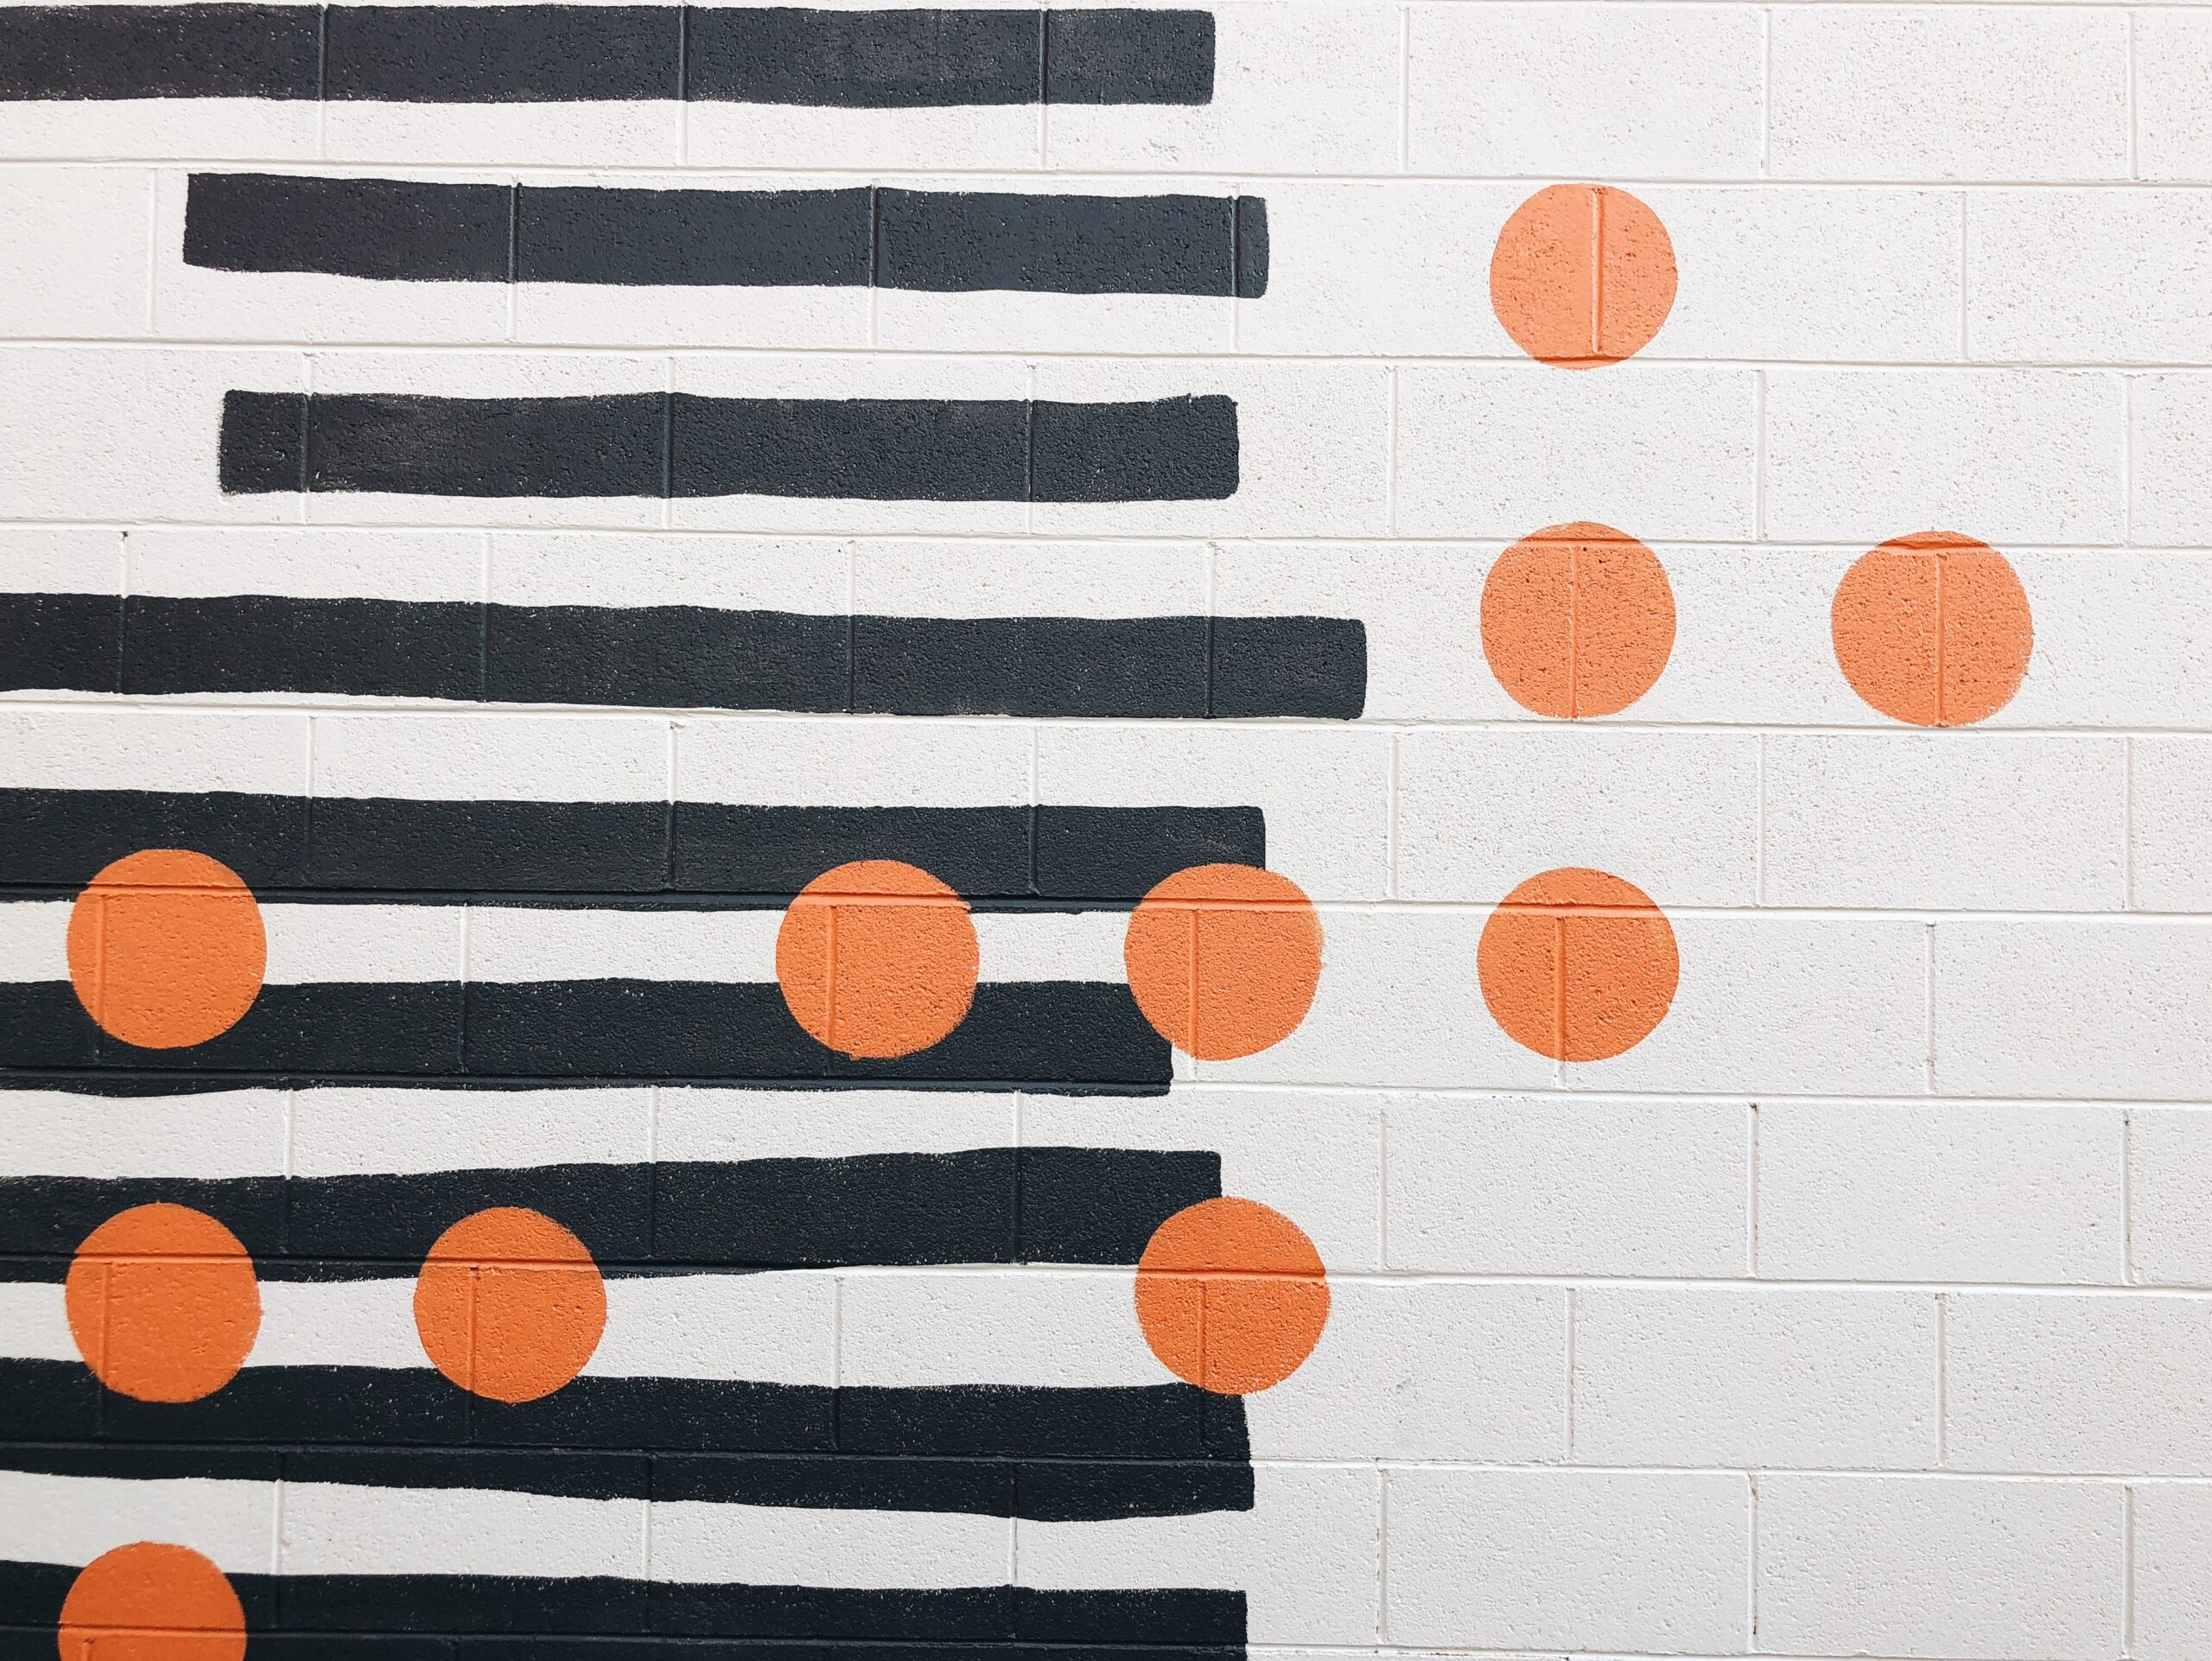 white brick wall painted with black stripes and orange dots